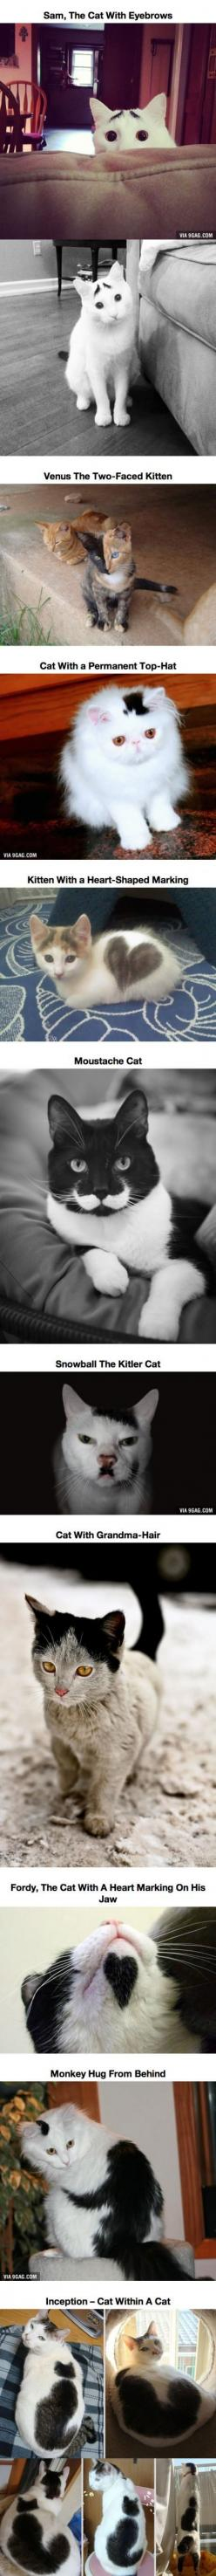 10 Cats That Got Famous For Their Awesome Fur Markings - Just DWL || The Ultimate Trolling: 10 Cats, Fur Markings, Kitty Kitty, Crazy Cat, Cat Lady, Awesome Fur, Animal